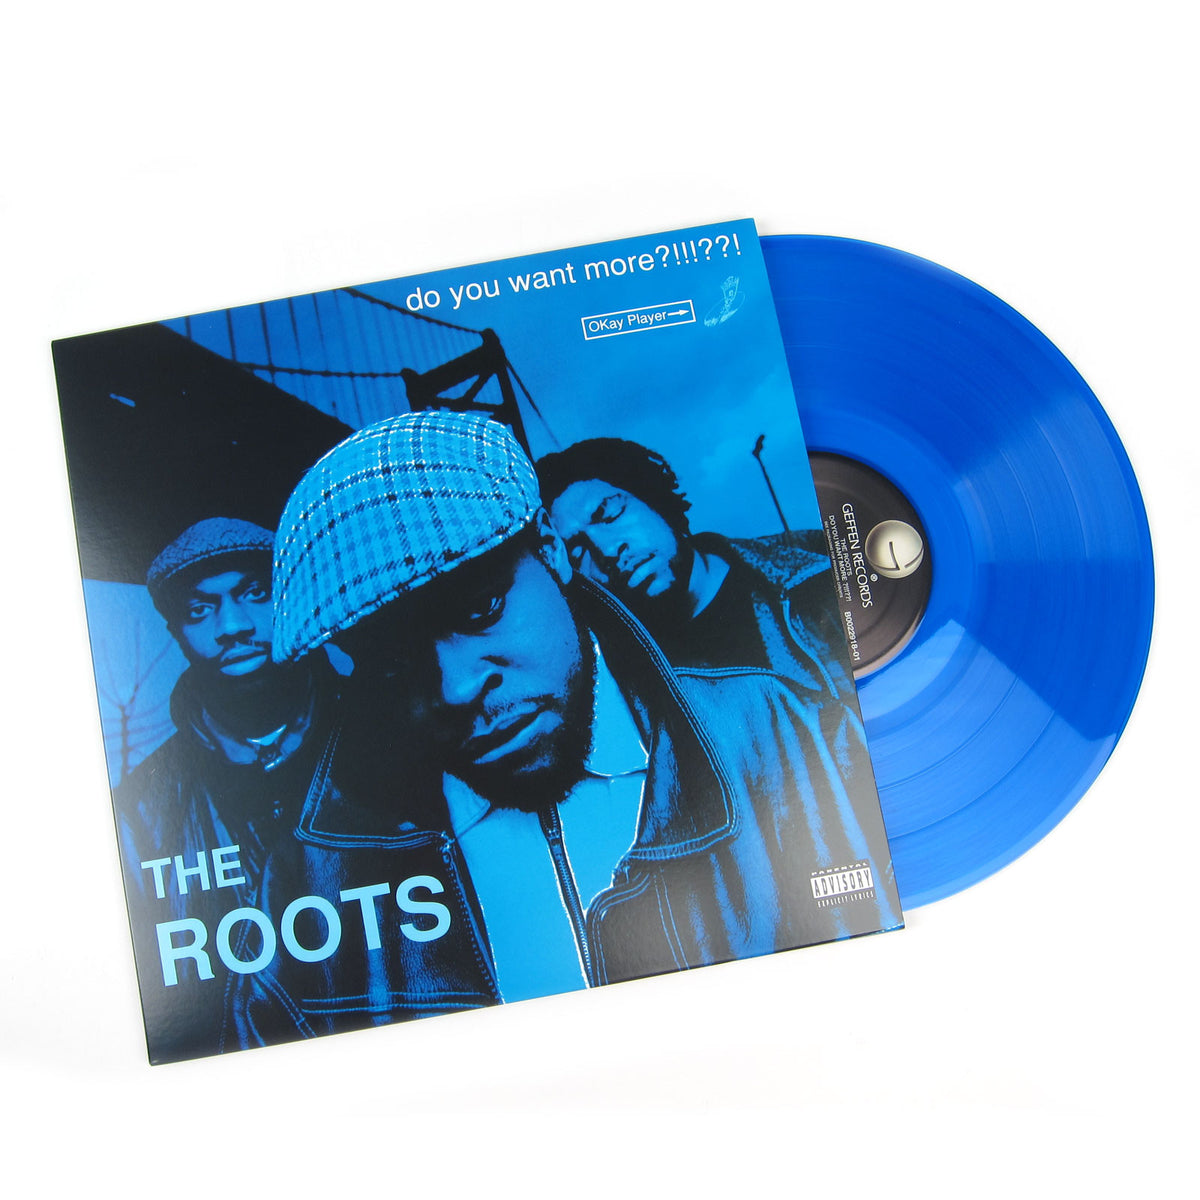 The Roots: Do You Want More (Colored Vinyl) Vinyl 2LP